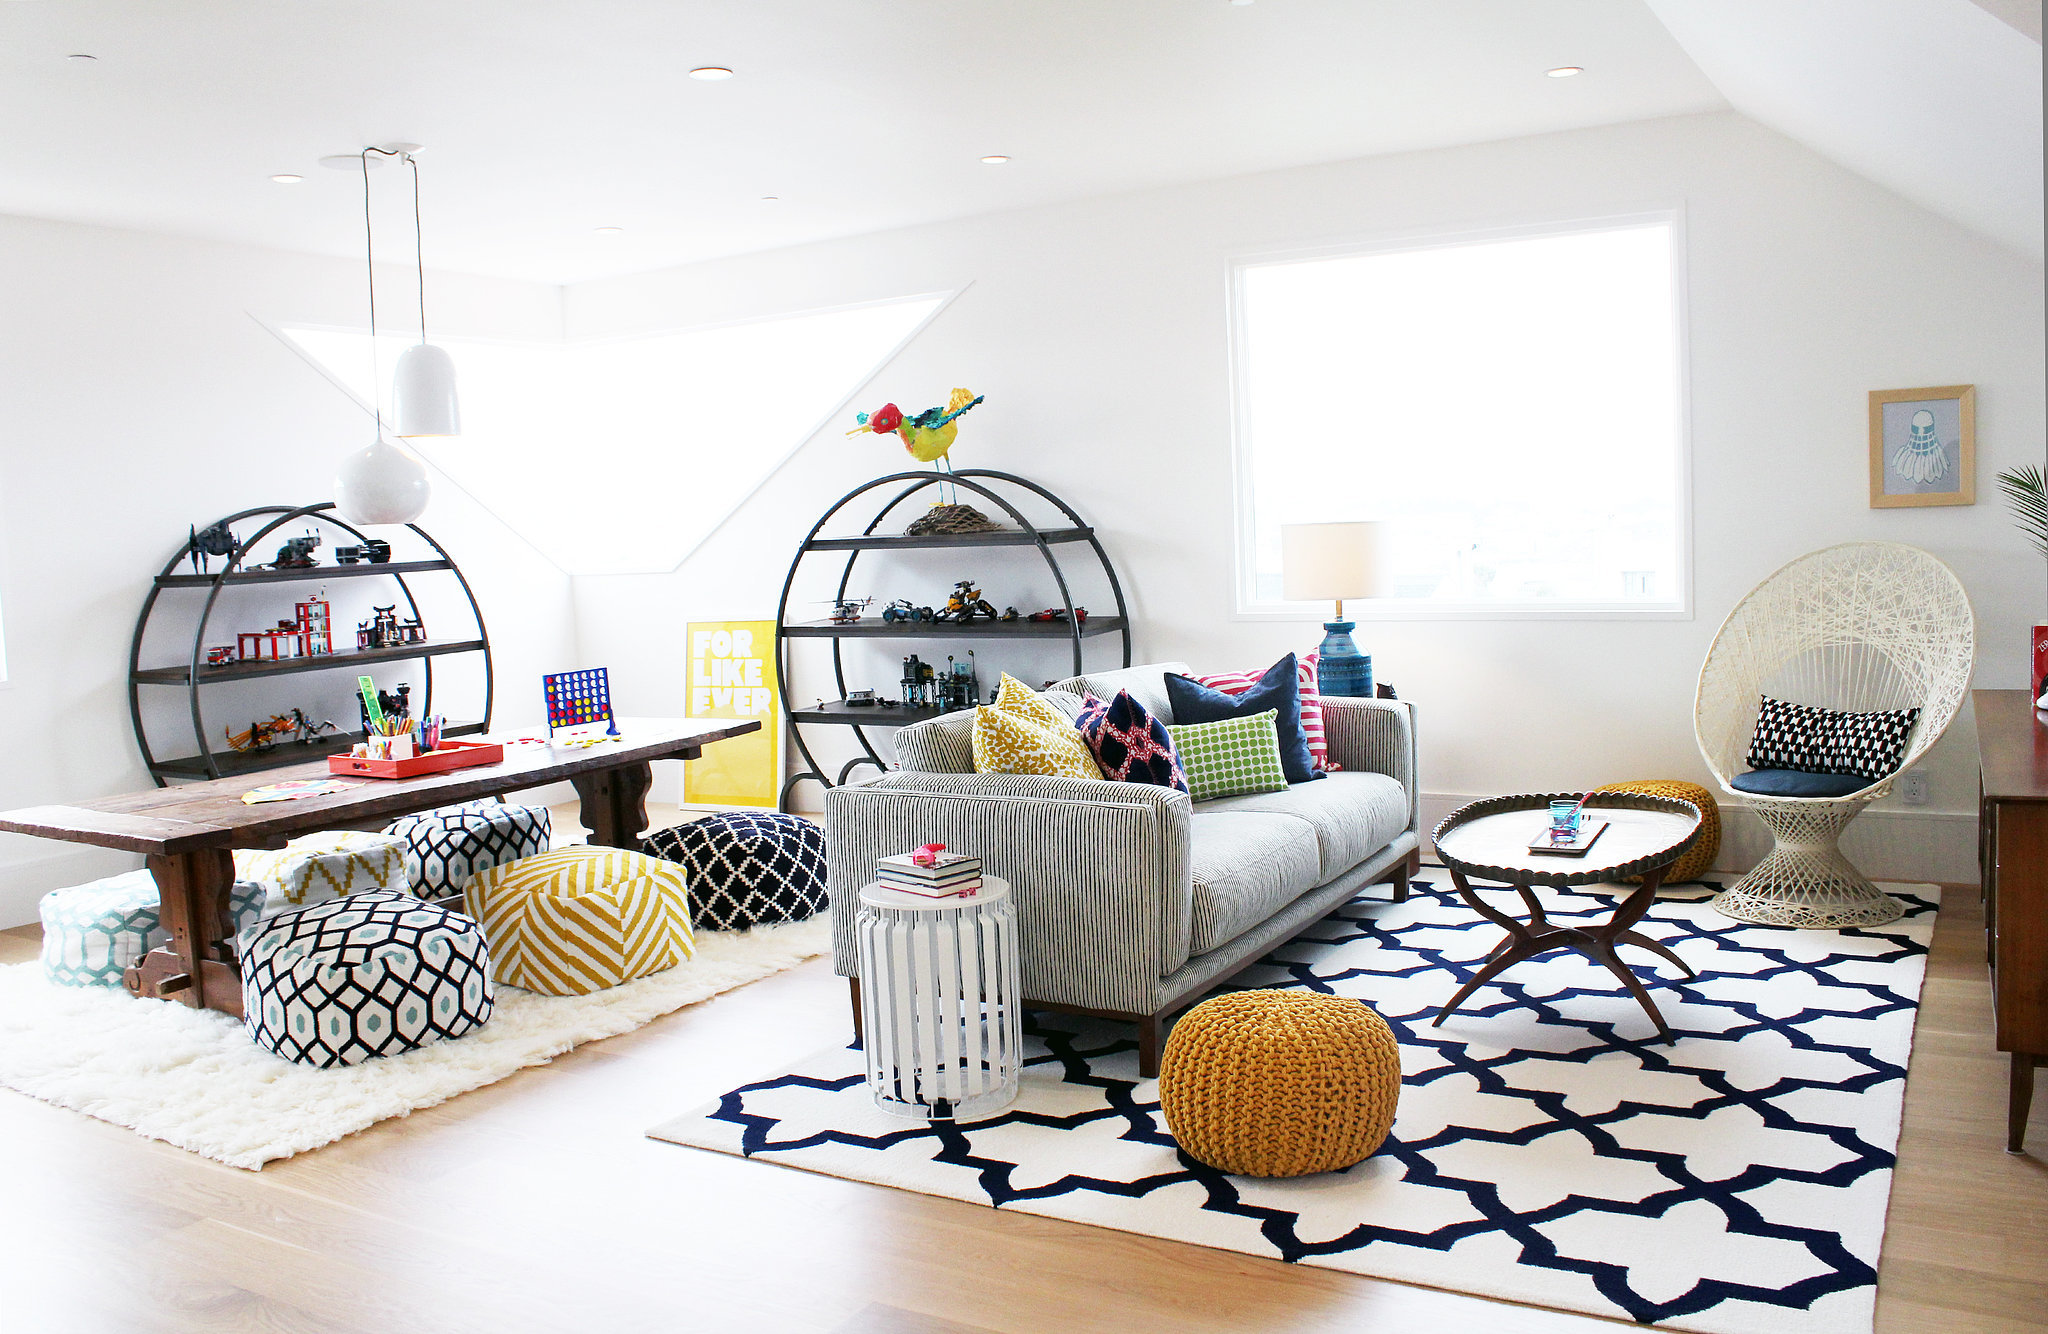 Online home decorating services popsugar home for Home design services